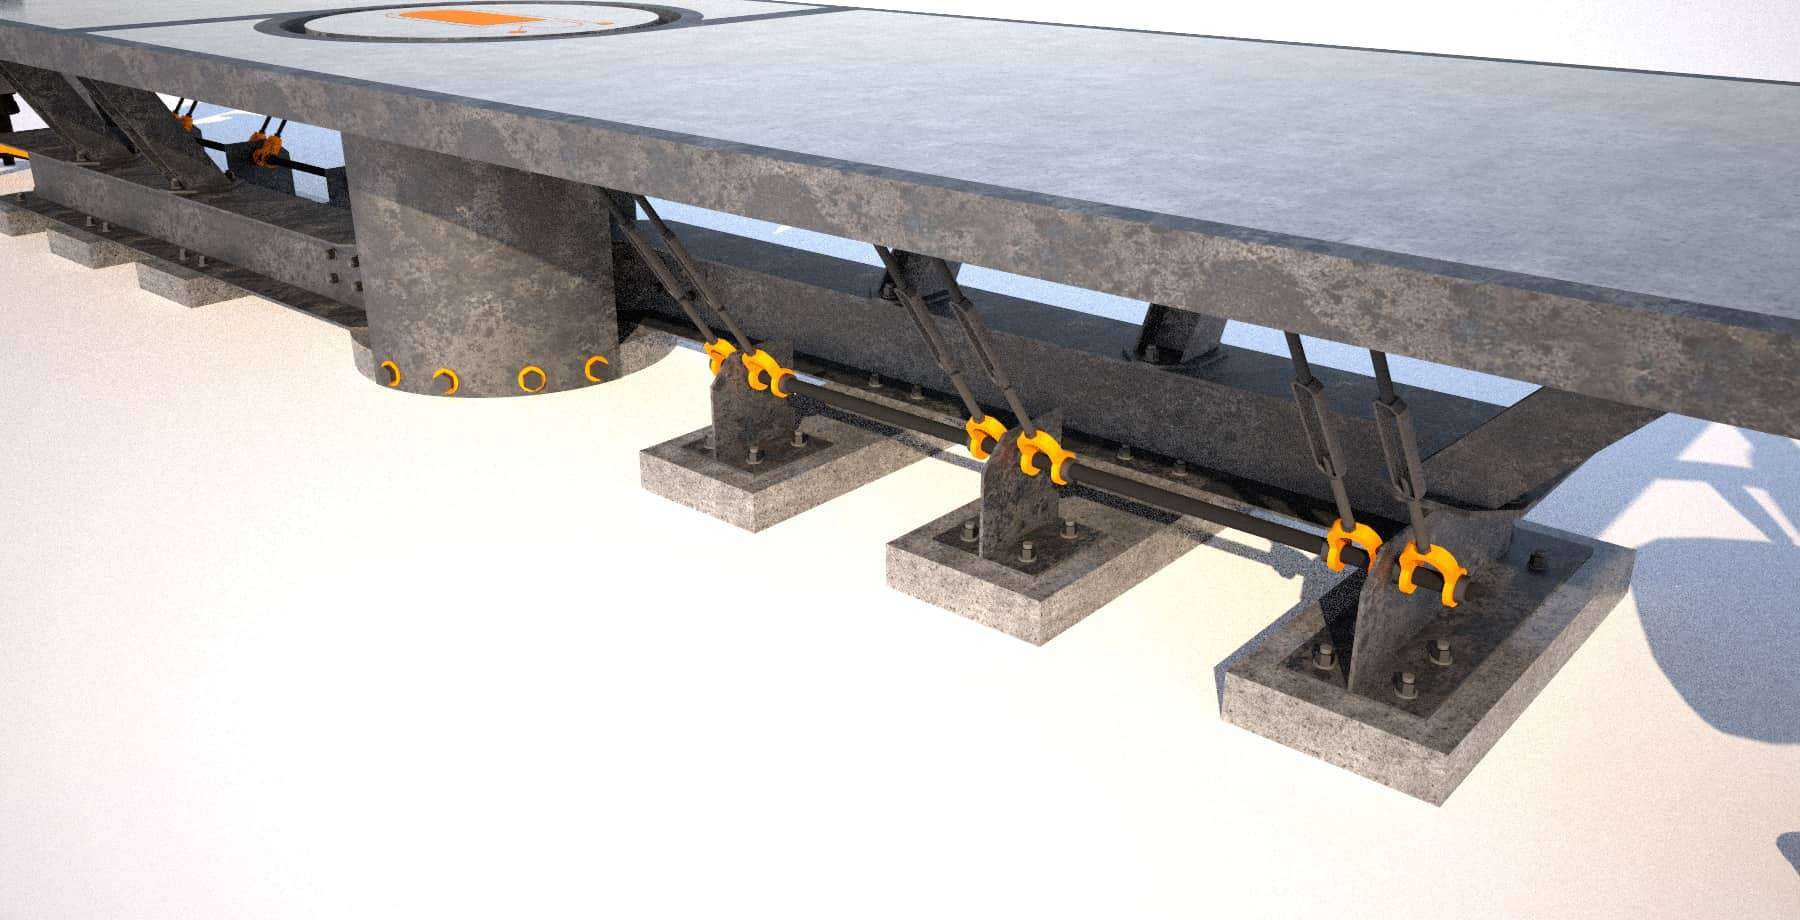 4 Steel and concrete conference room table, base angle closeup 1, Designs by Rudy (2)